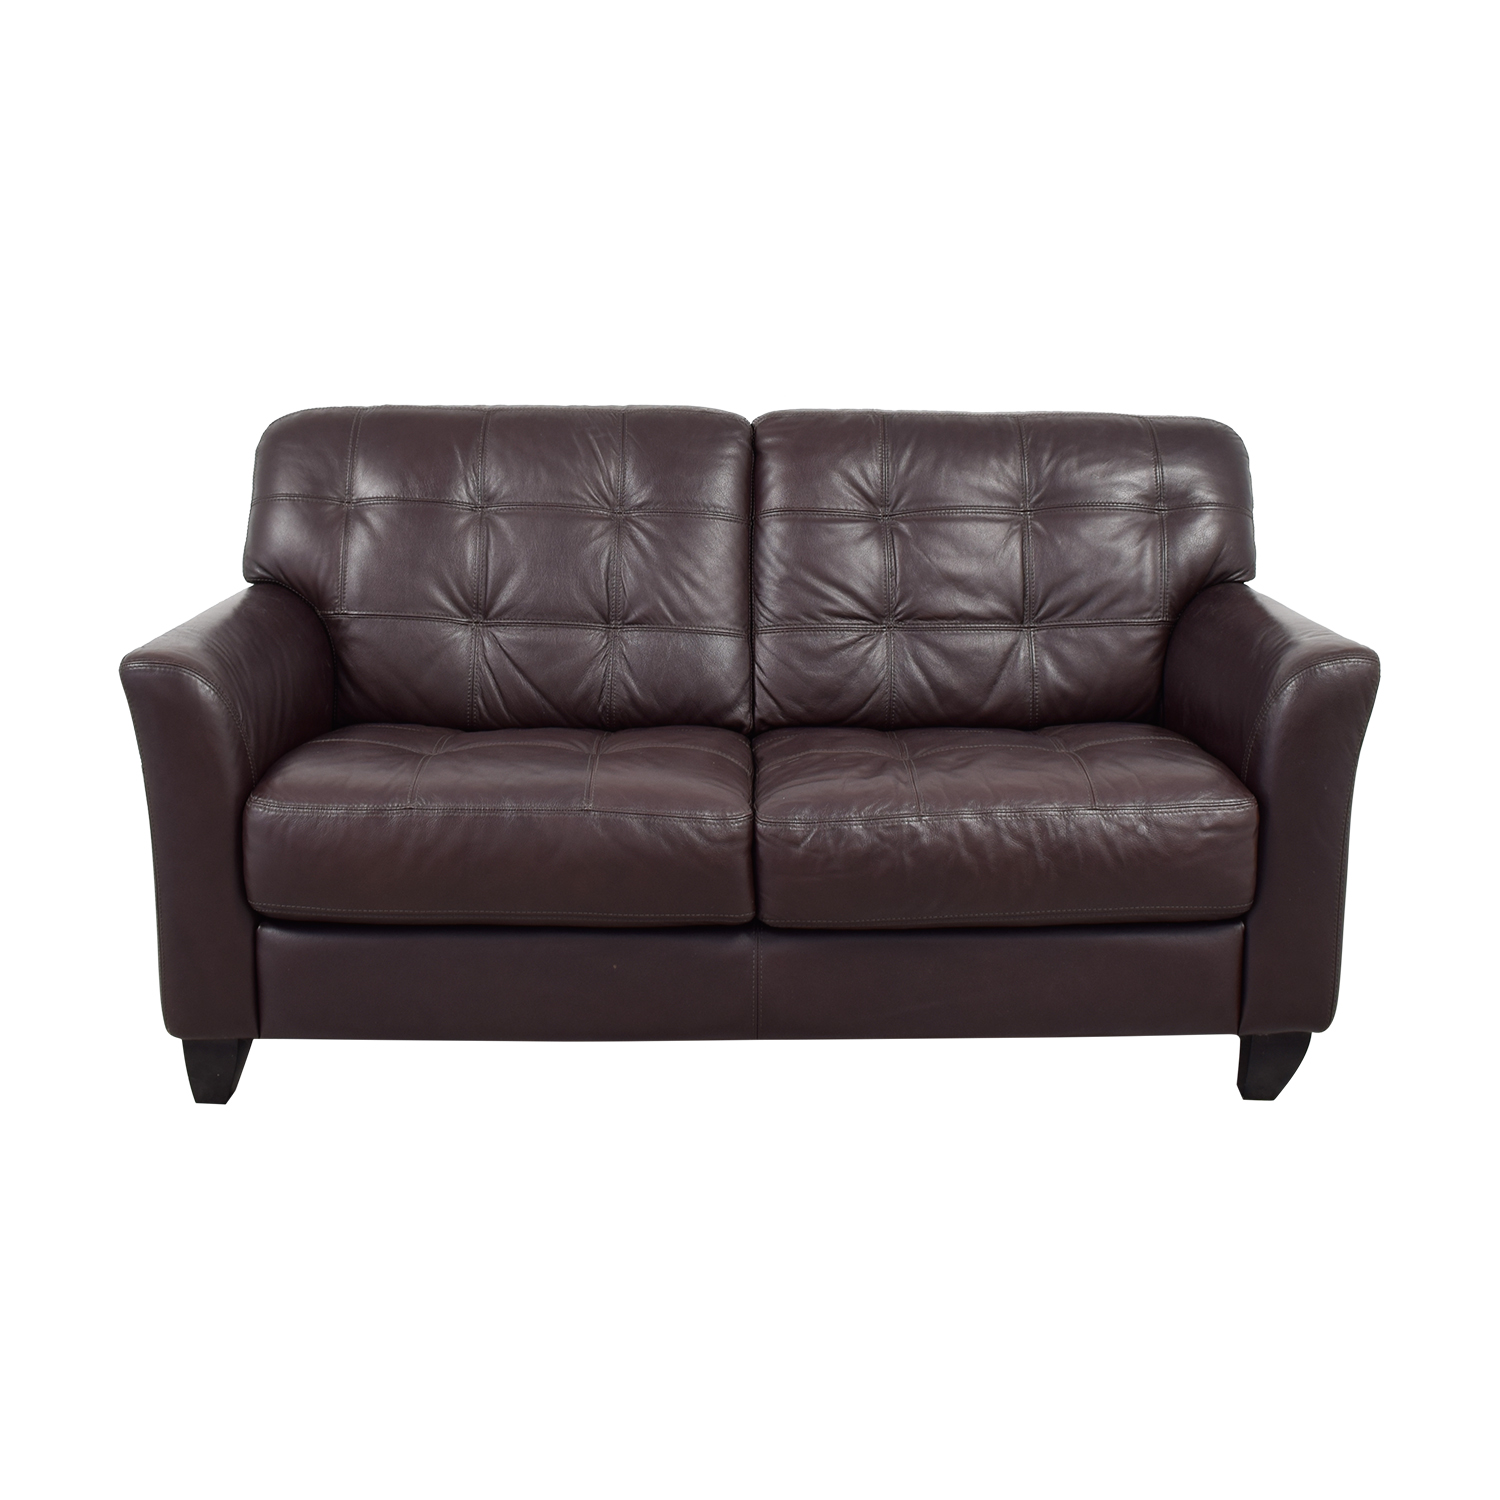 Macy's Macy's Kaleb Loveseat second hand